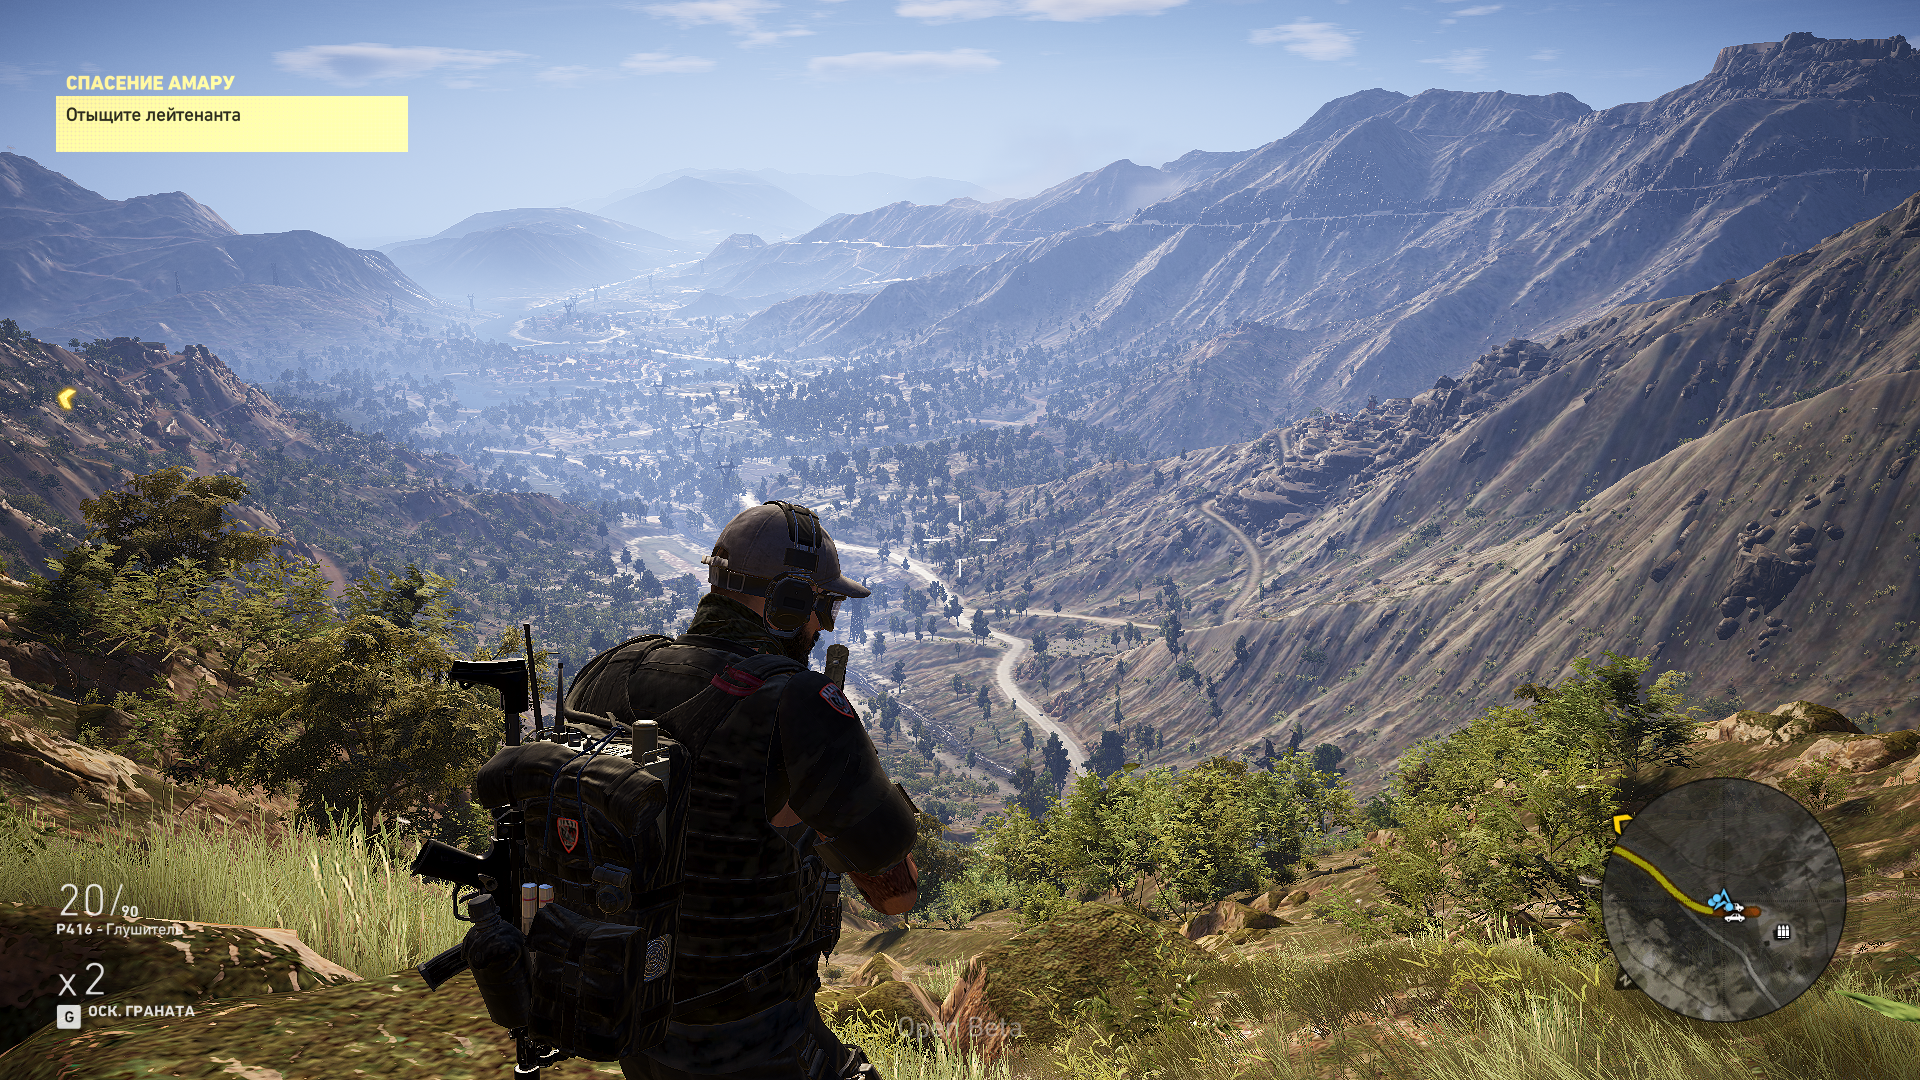 Природа - Tom Clancy's Ghost Recon: Wildlands action military, tactical shooter, cool, shootmania, виртуальная природа